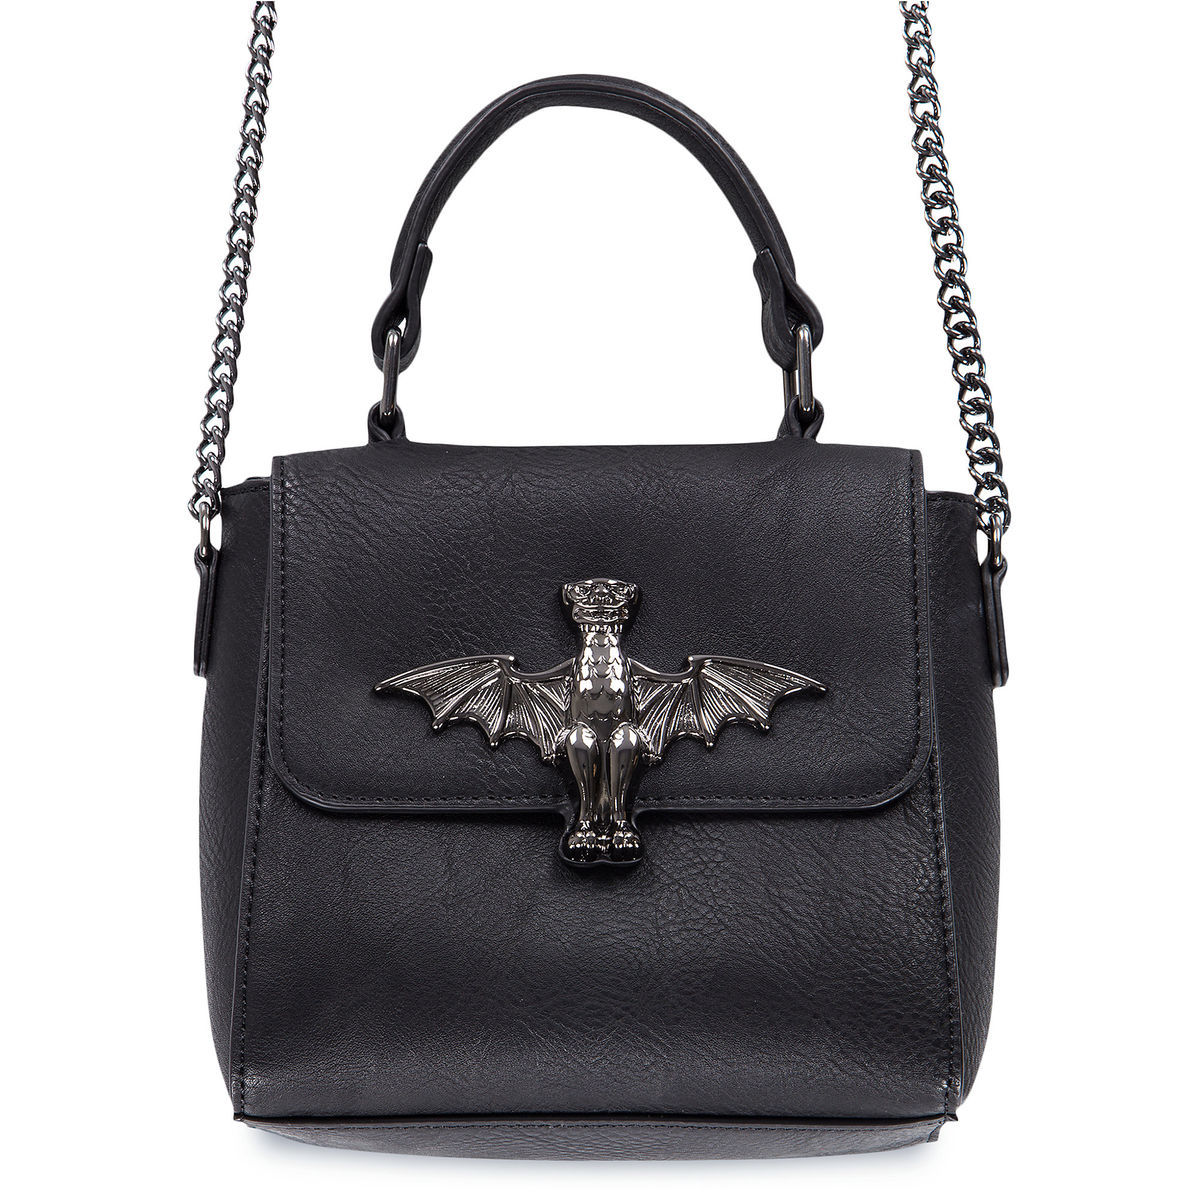 5bc44f86f36 Add to My Lists. Disney Loungefly Bag - The Haunted Mansion Crossbody